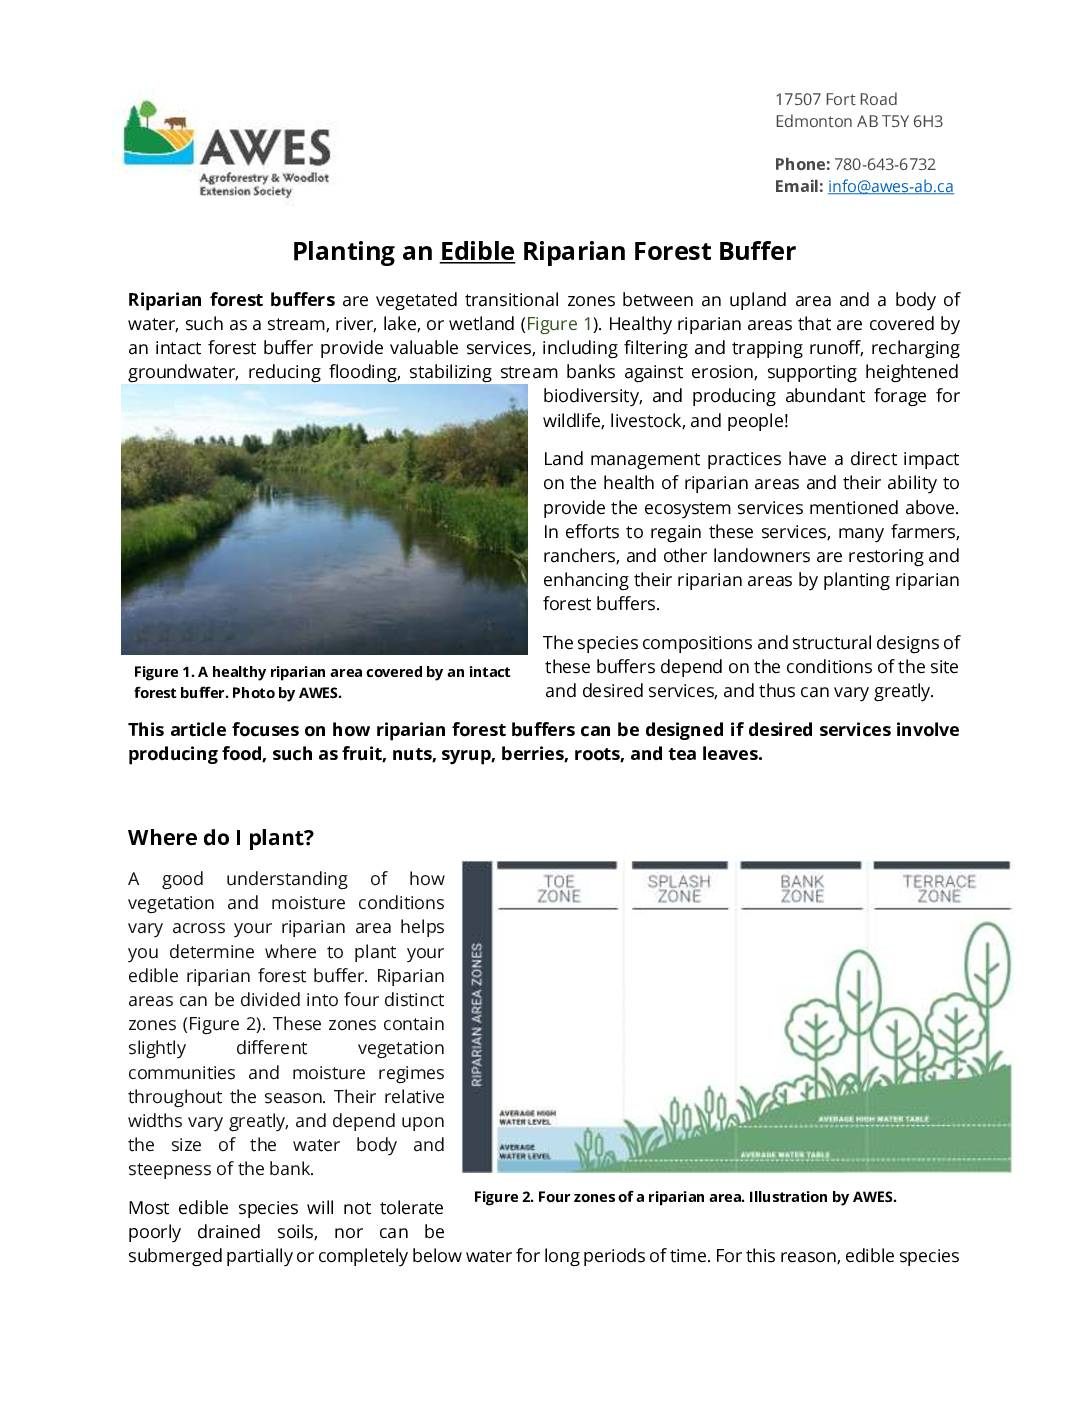 Planting an Edible Riparian Forest Buffer